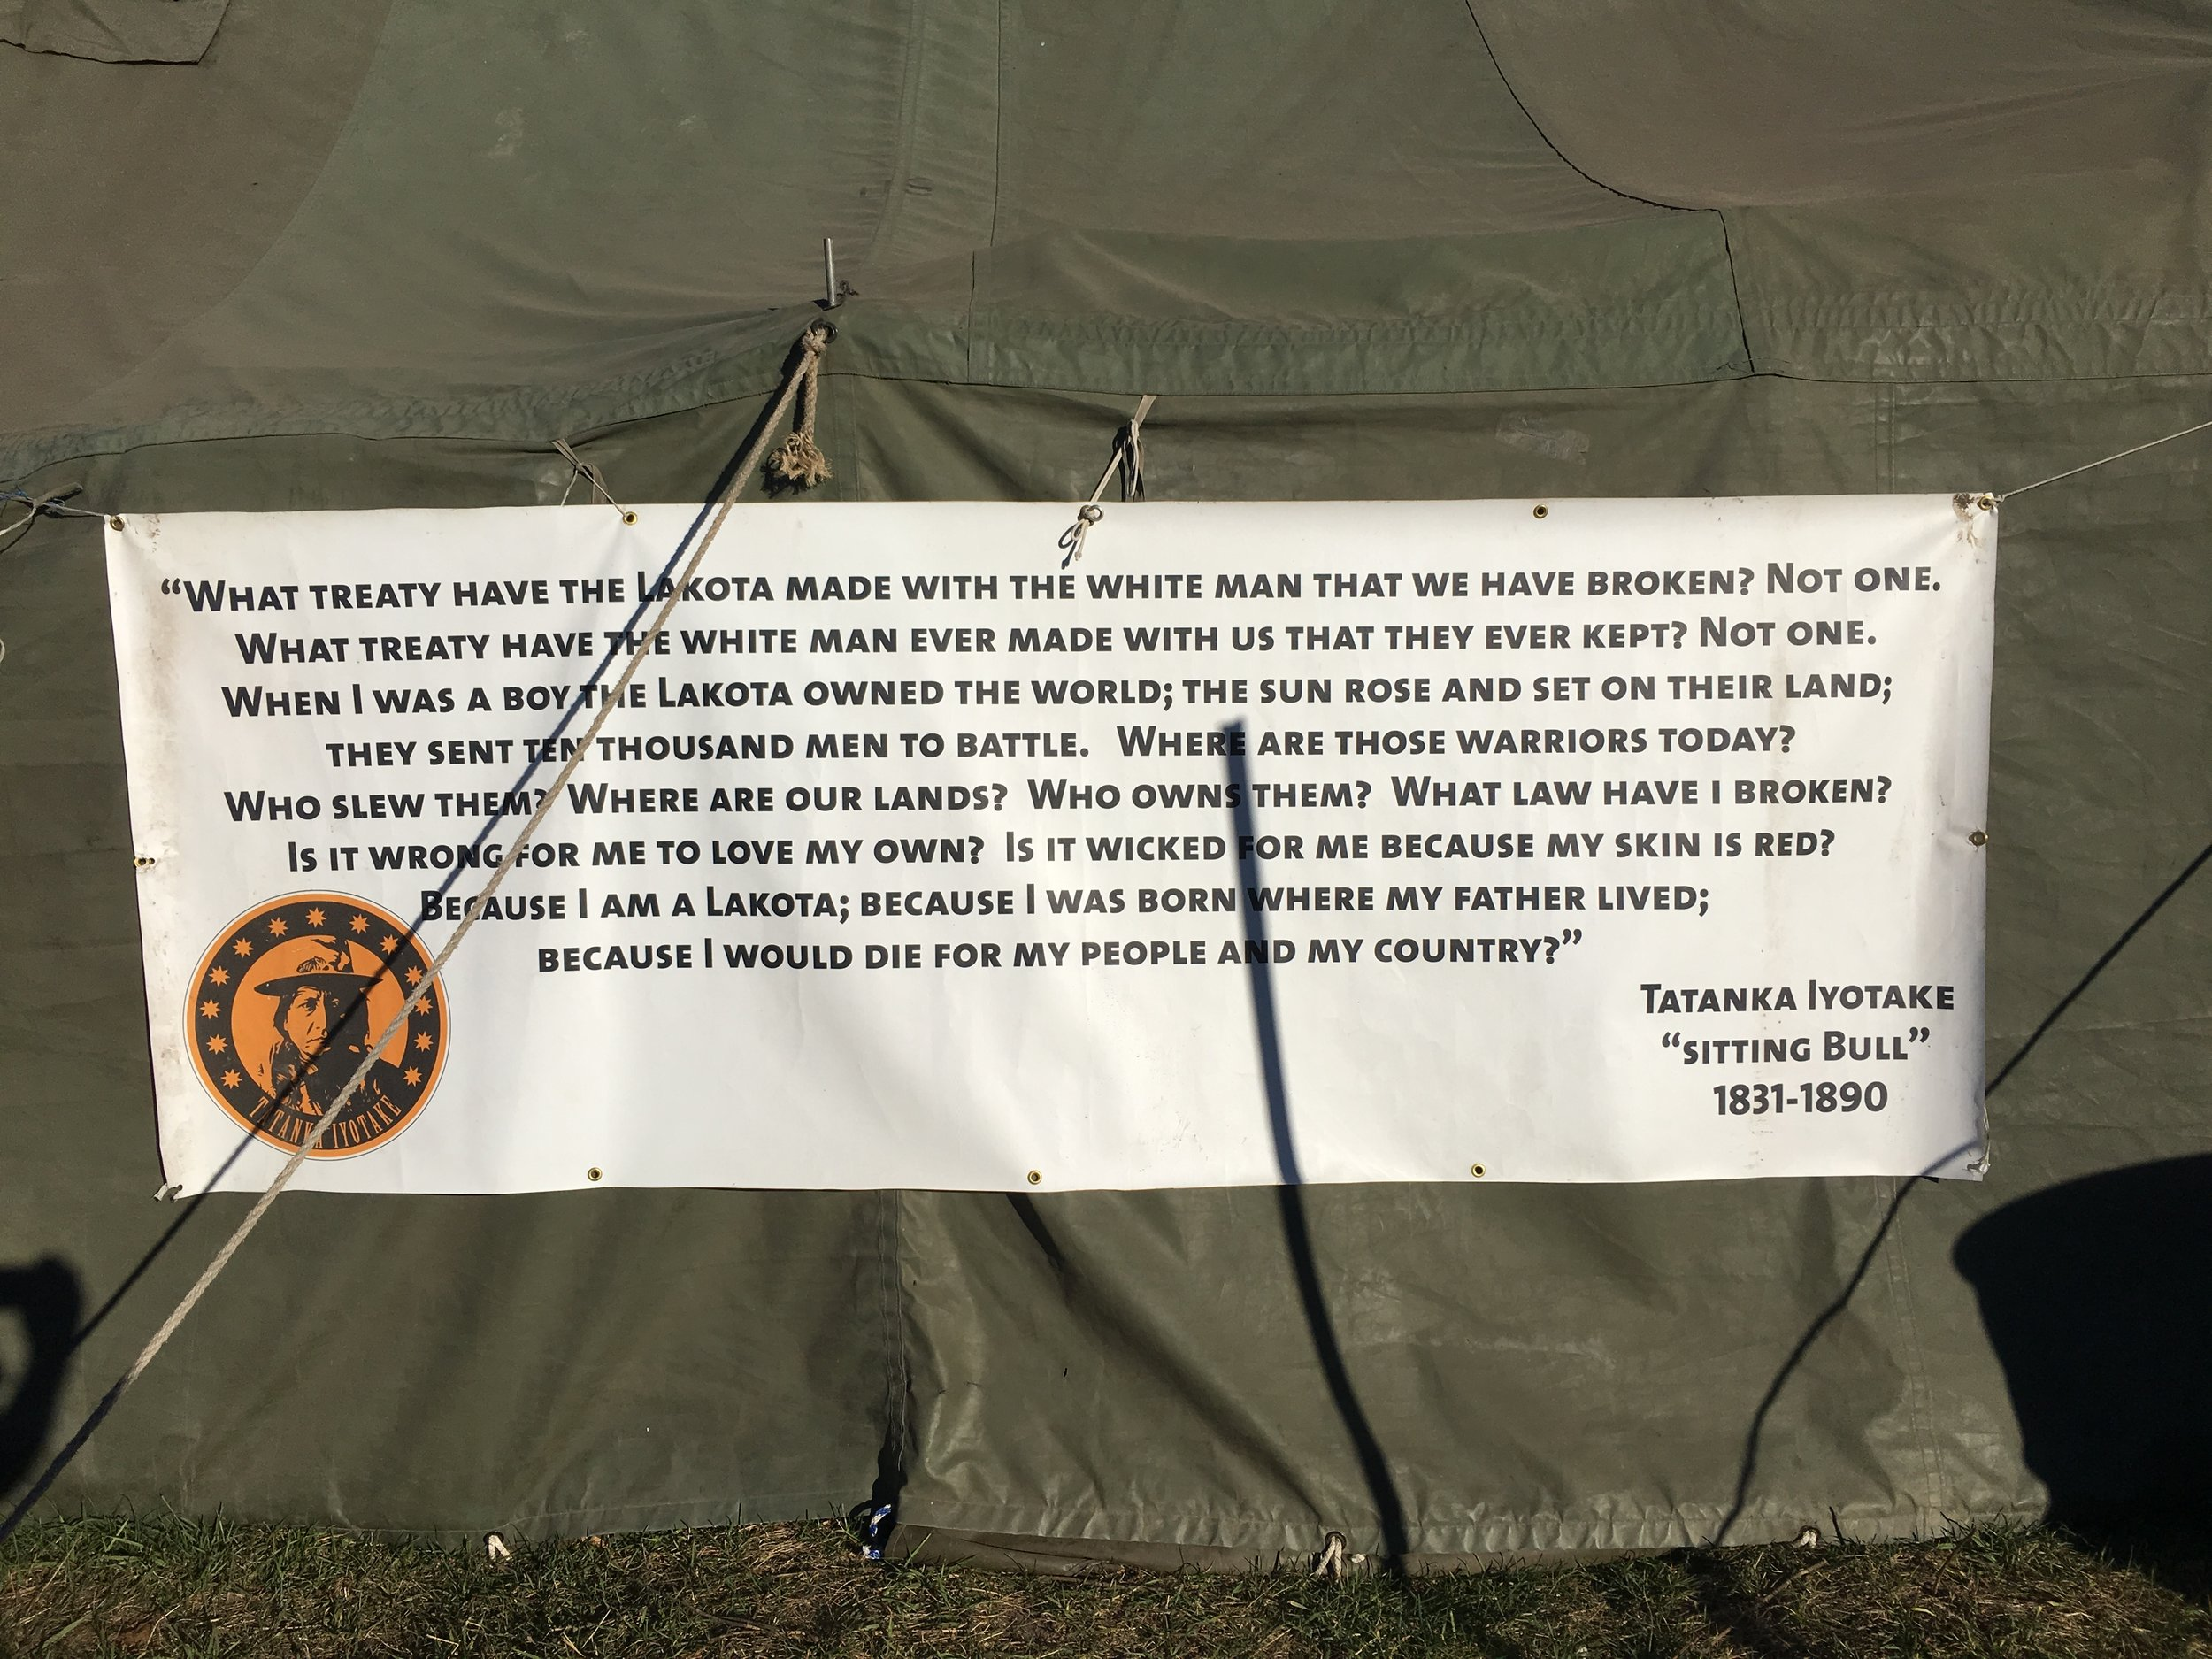 A sign hung on the side of a tent at Rosebud Camp on the Standing Rock Sioux Reservation in November 2016.